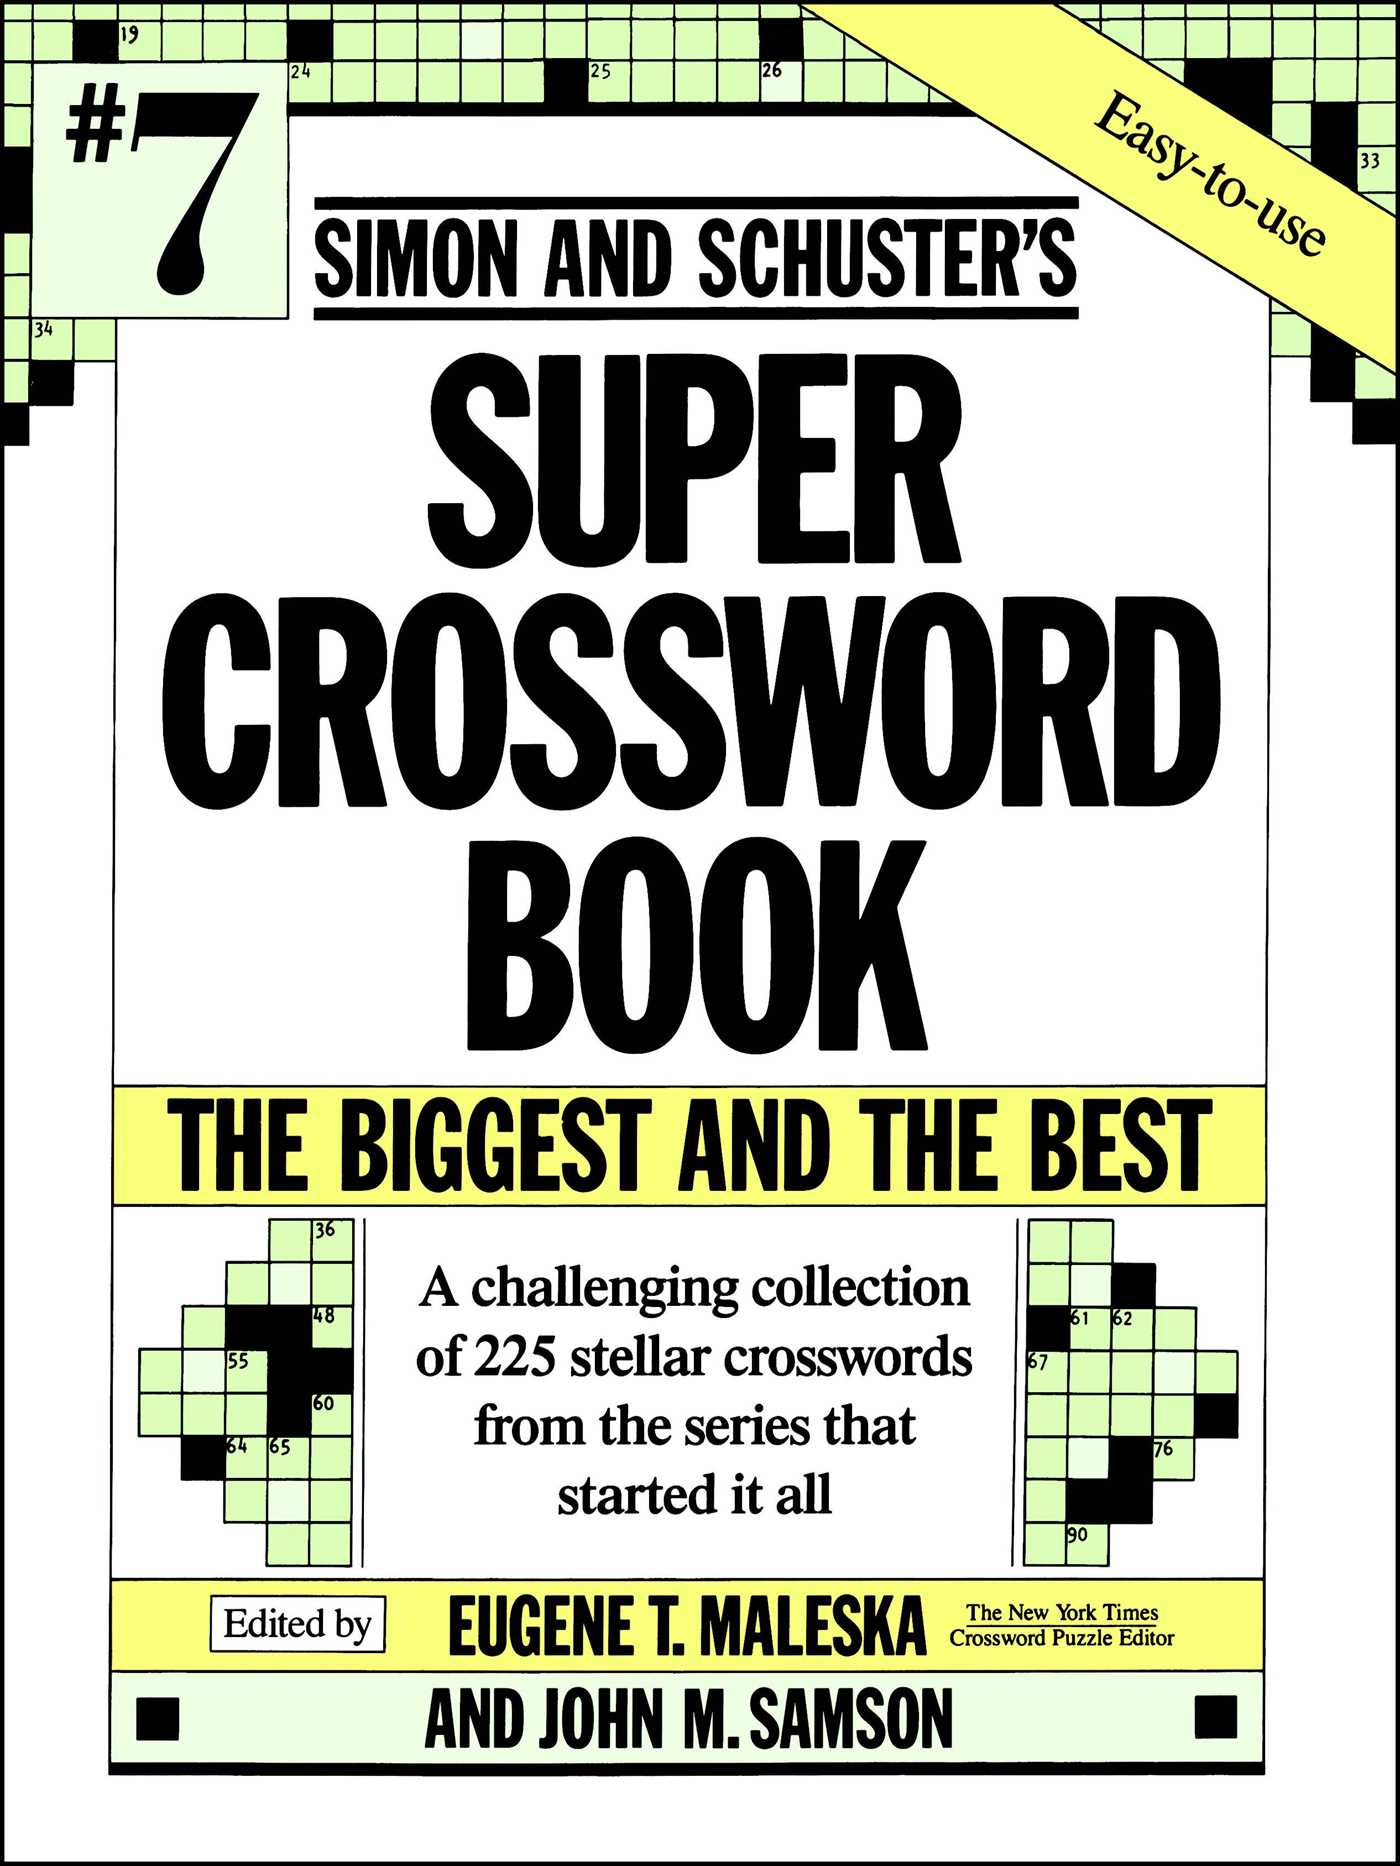 Simon-and-schuster-super-crossword-book-7-9780671792329_hr